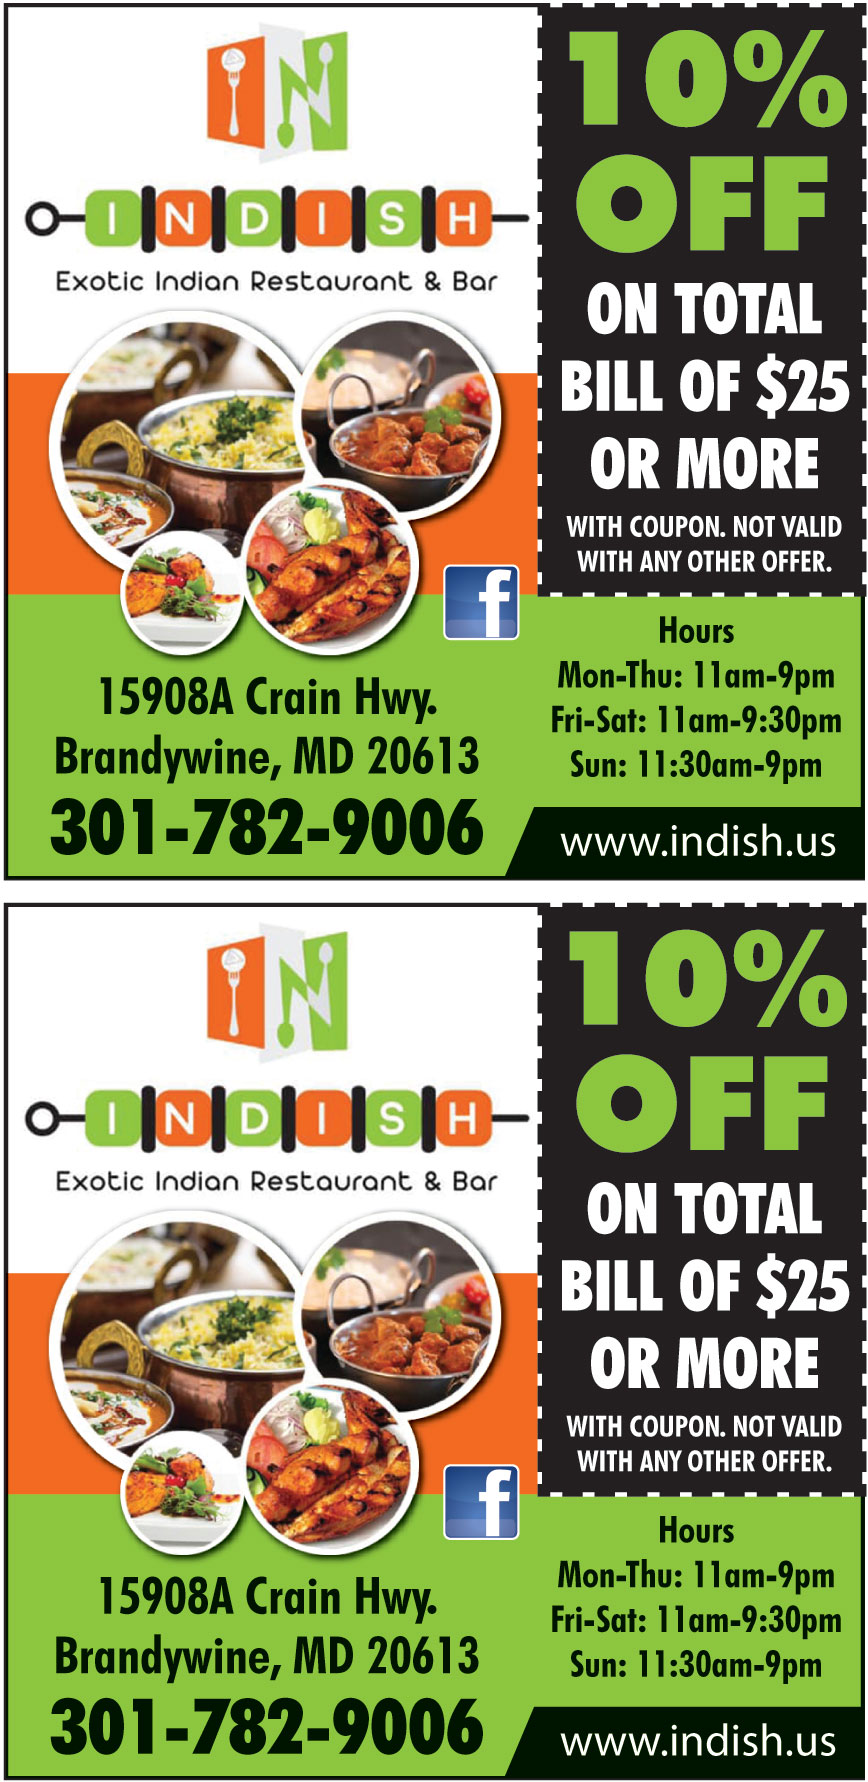 INDISH EXOTIC INDIAN REST